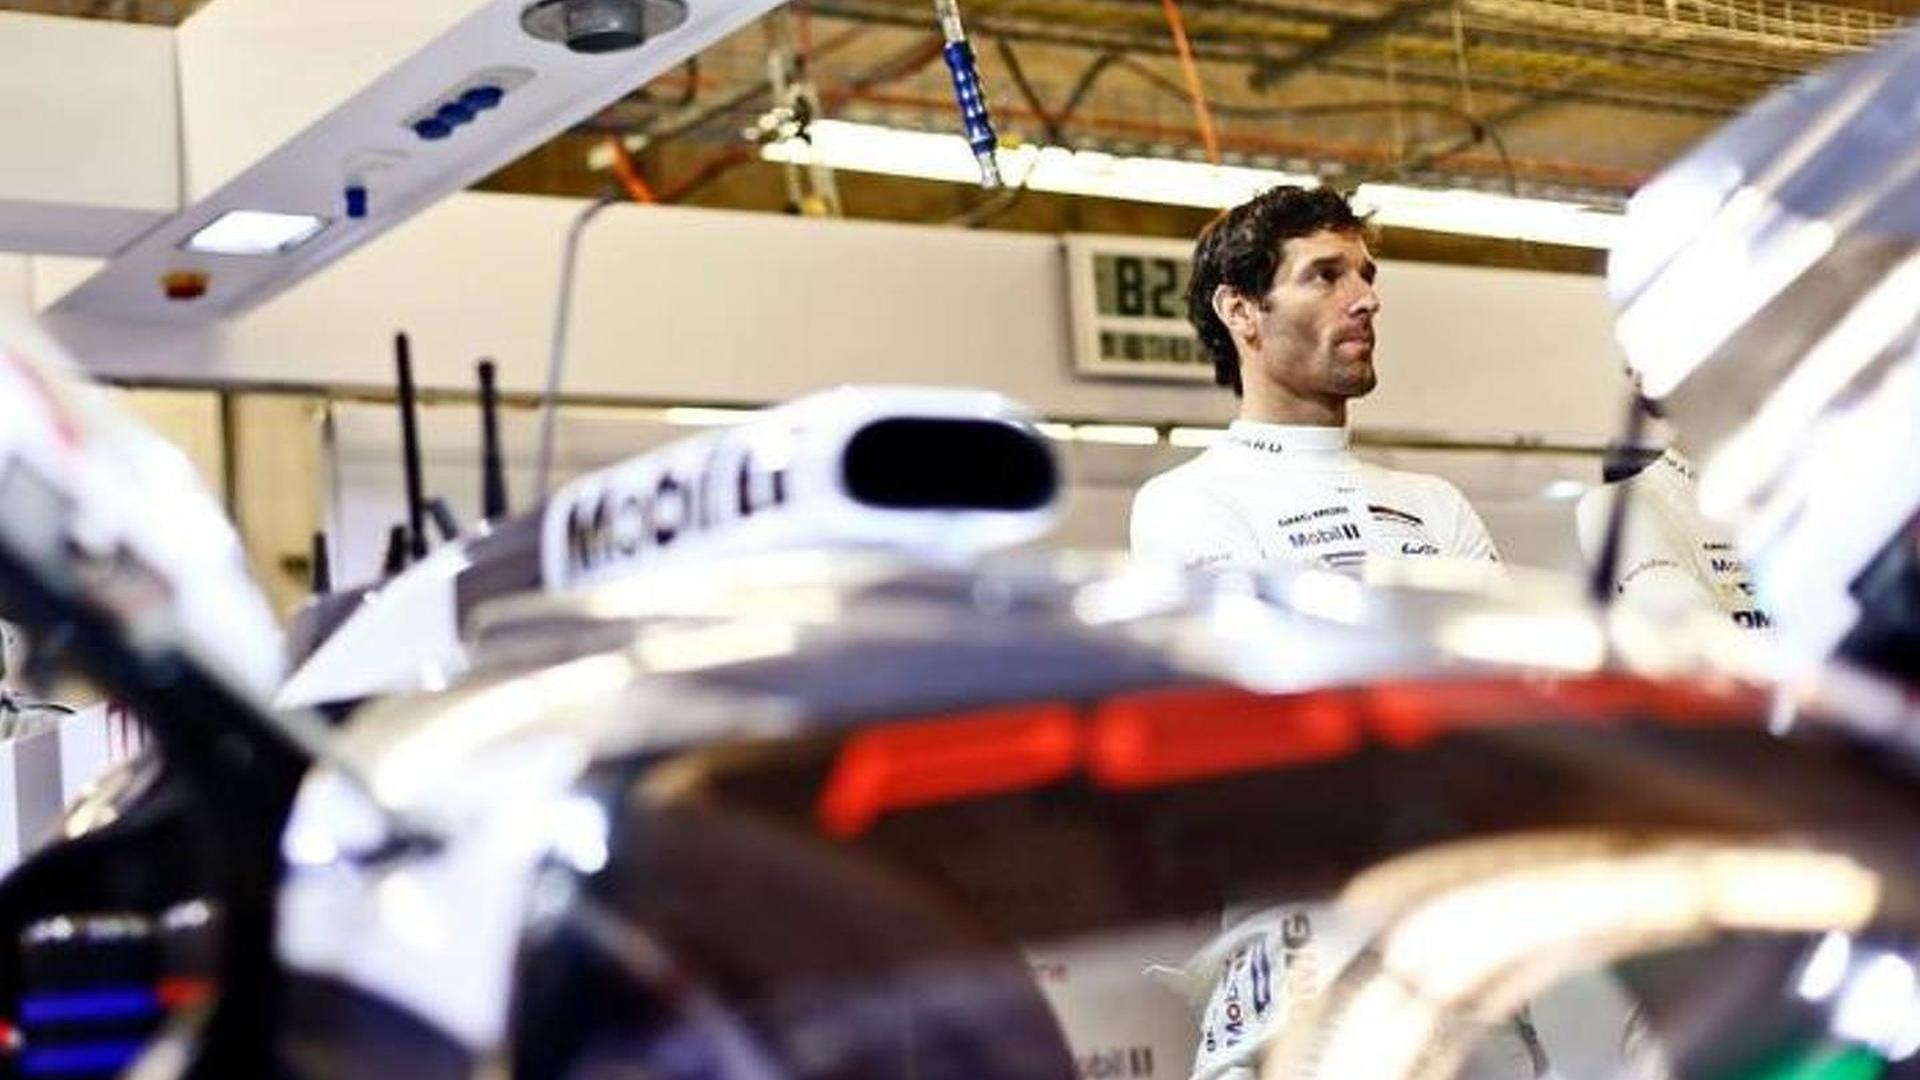 Today's F1 'is not racing' - Webber